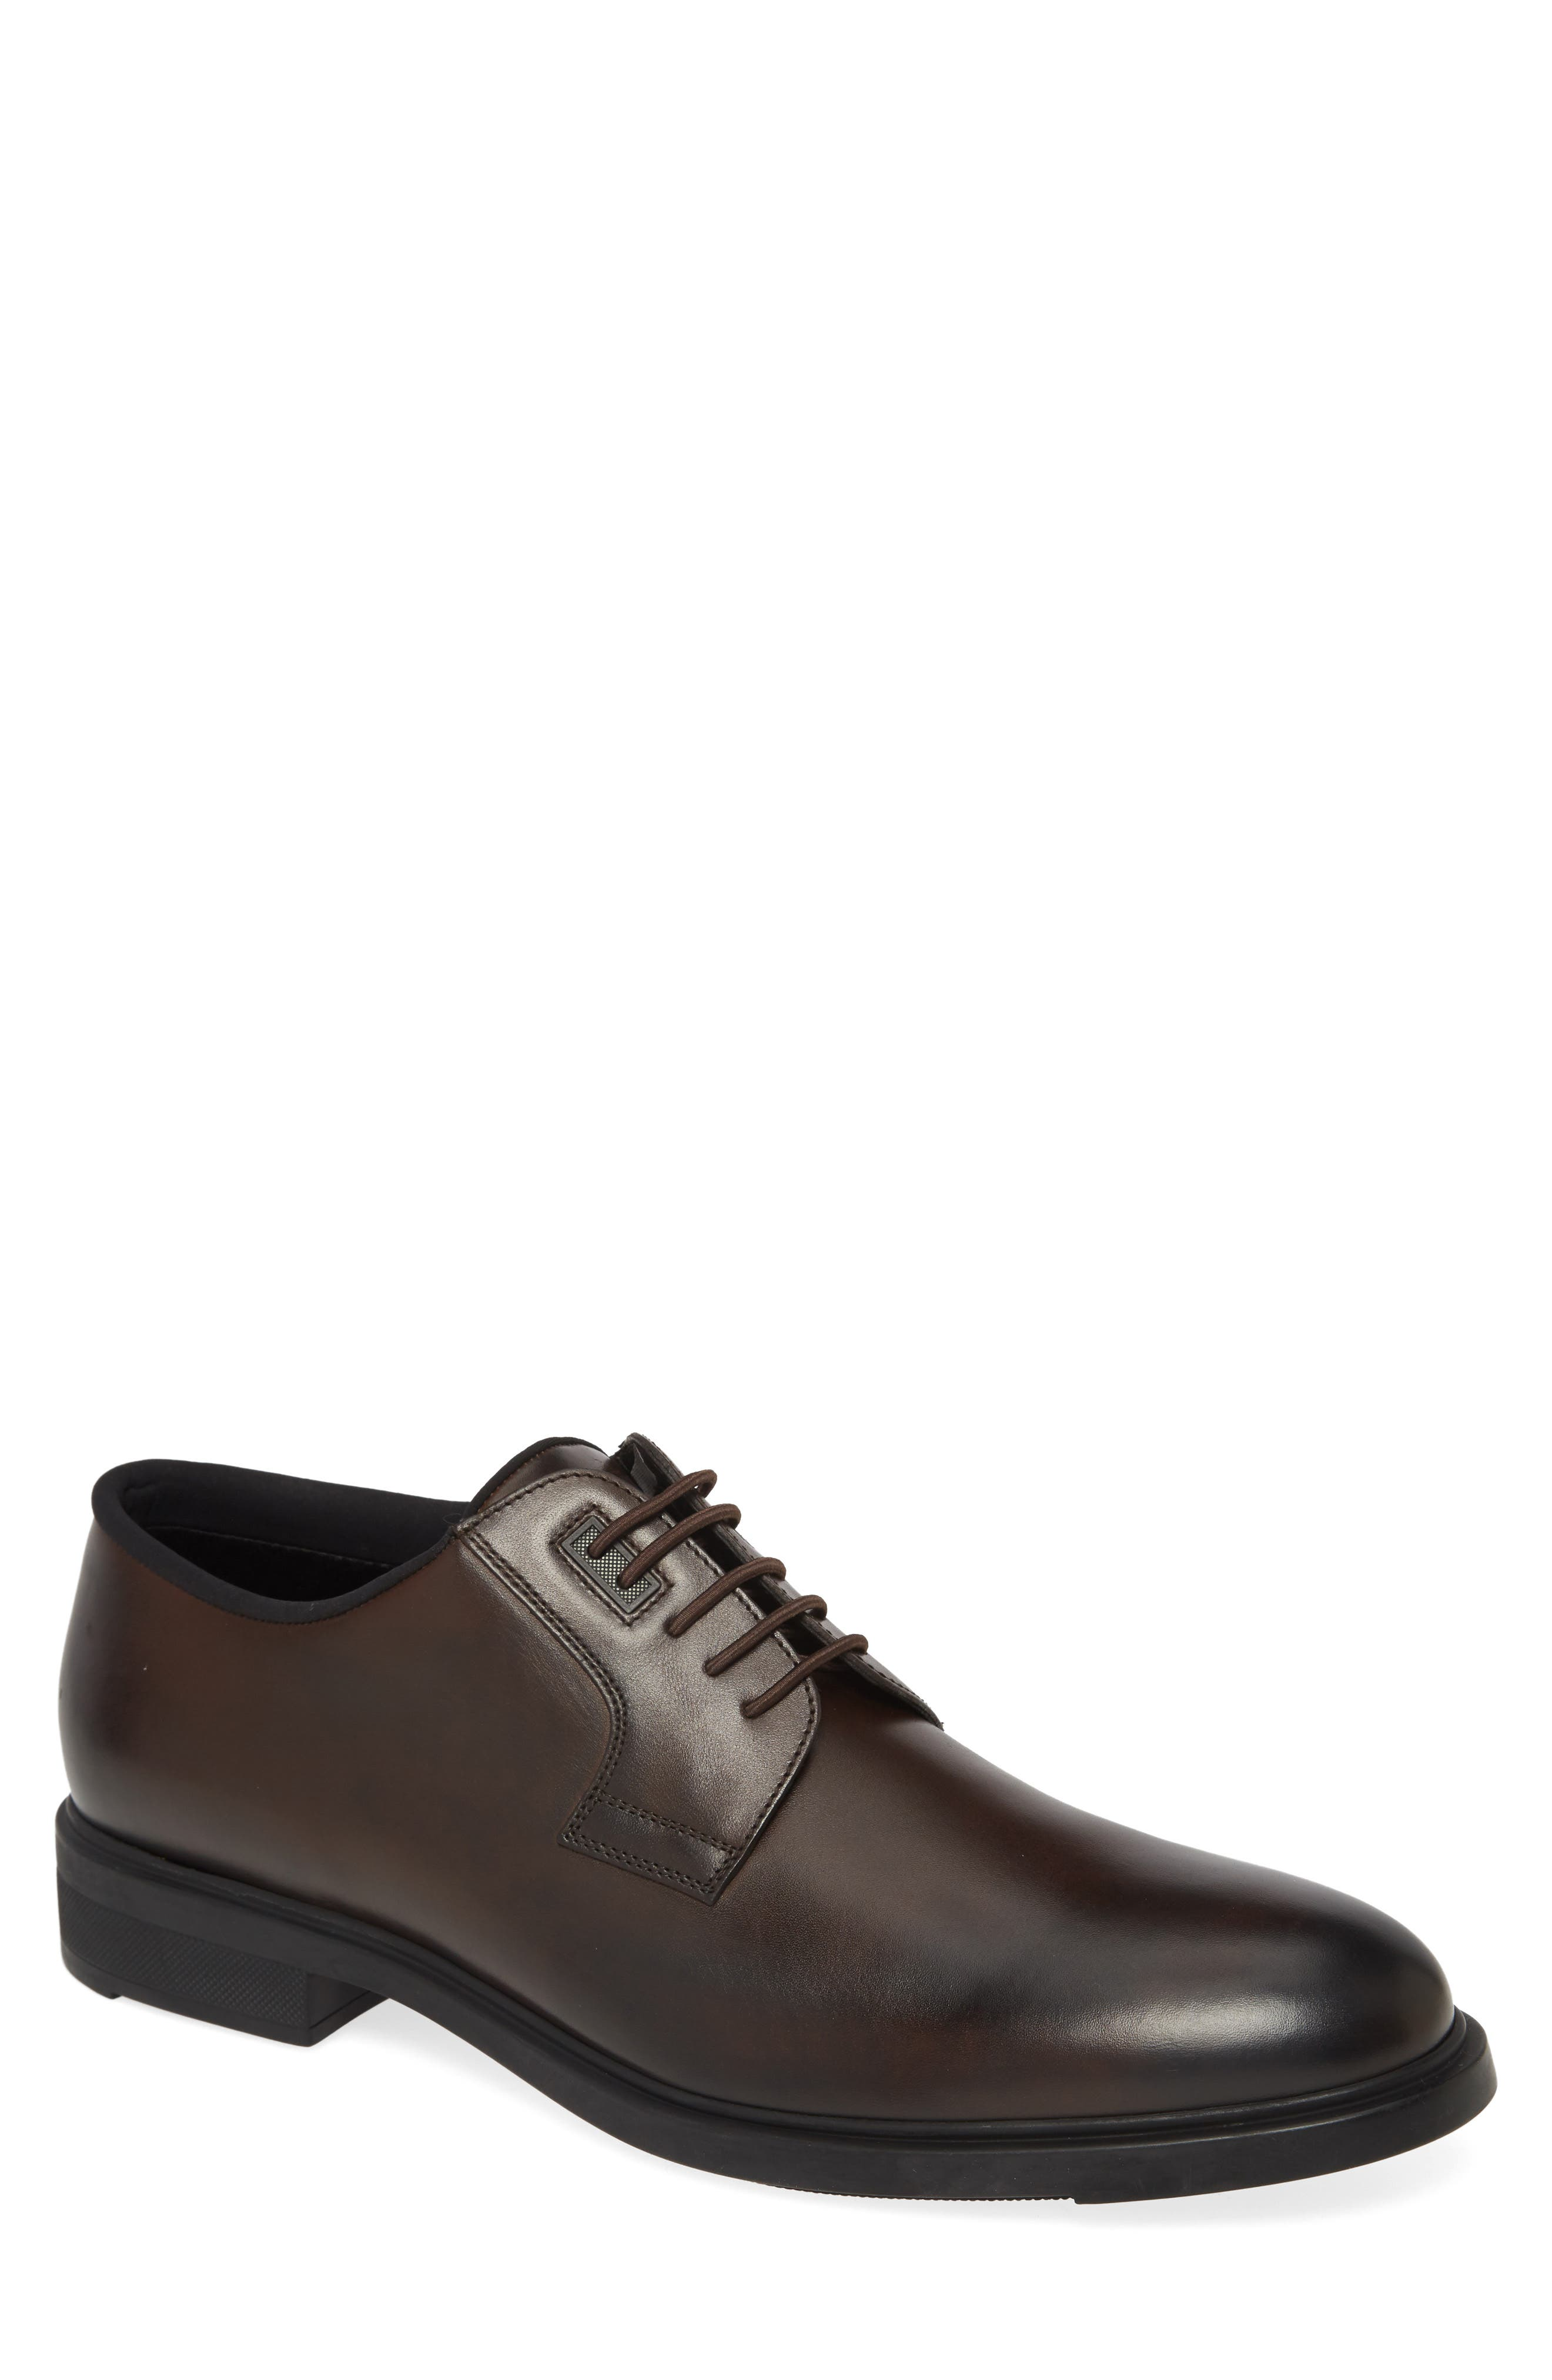 Image of BOSS First Class Plain Toe Leather Derby